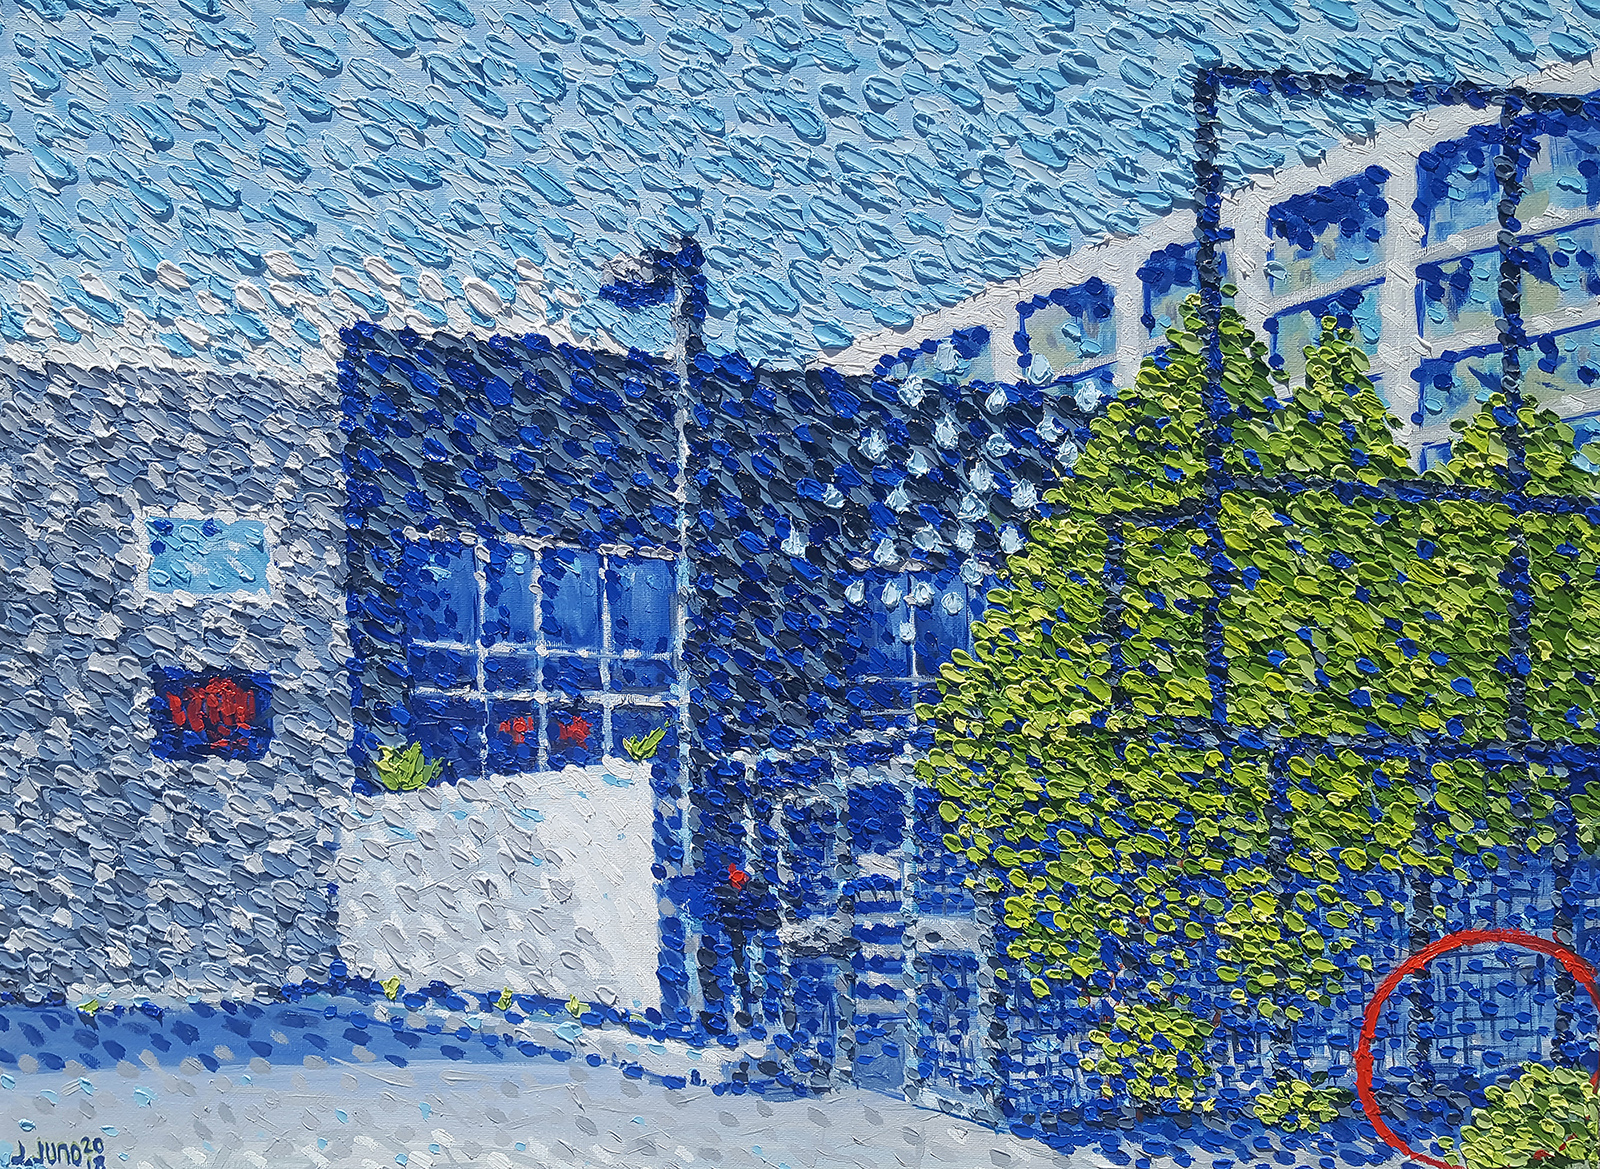 This is a painting of Redline Contemporary Art Center in bright natural sunlight, a non profit art center located in Denver ( www.redlineart.org ). This print is the painting in bright sunlight. It is oil on canvas, the style is inspired by impressionism and post-impressionism, and the painting was completed in 2018 by artist J. Juno.  Redbubble Prints and Merchandise-  https://www.redbubble.com/people/jjuno/works/32481275-redline   Pinterest Pin-  https://pin.it/57yyomdvqt2kat